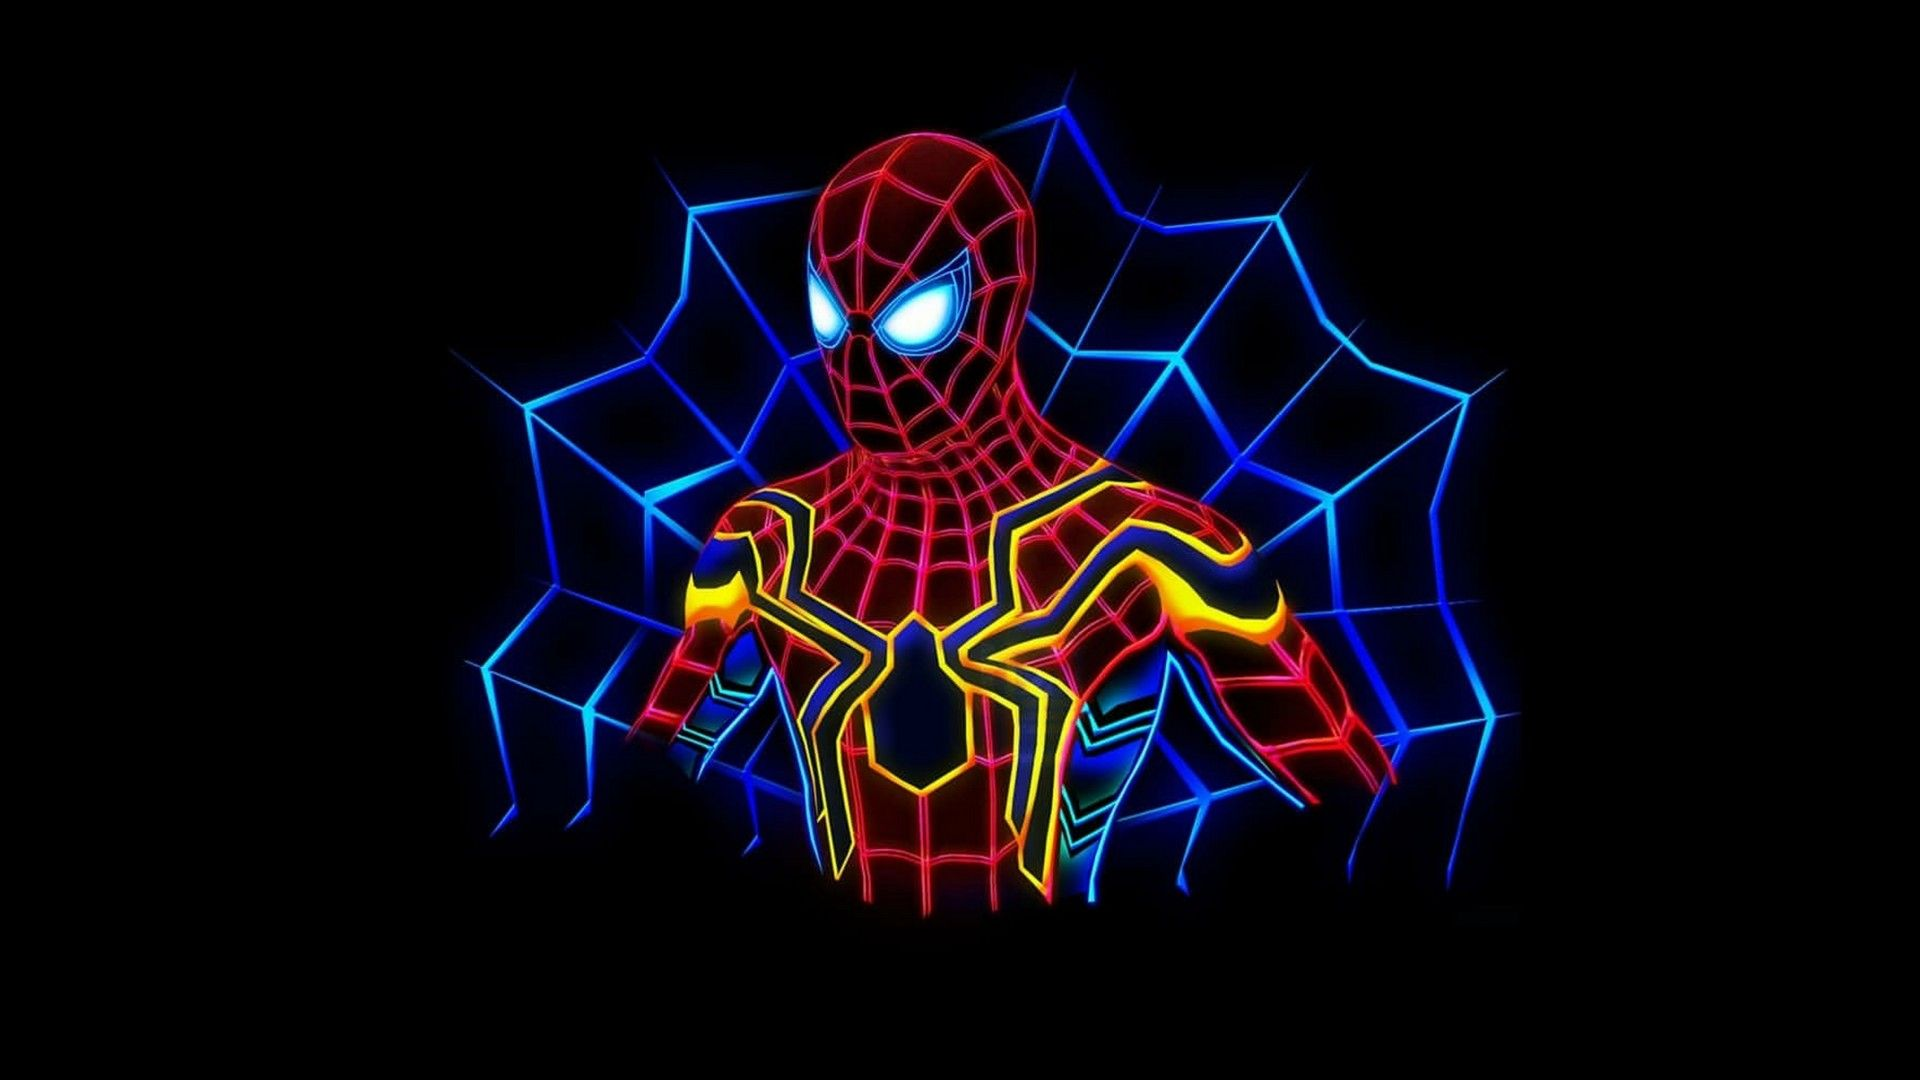 Spider Wallpaper Hd Posted By Ryan Thompson